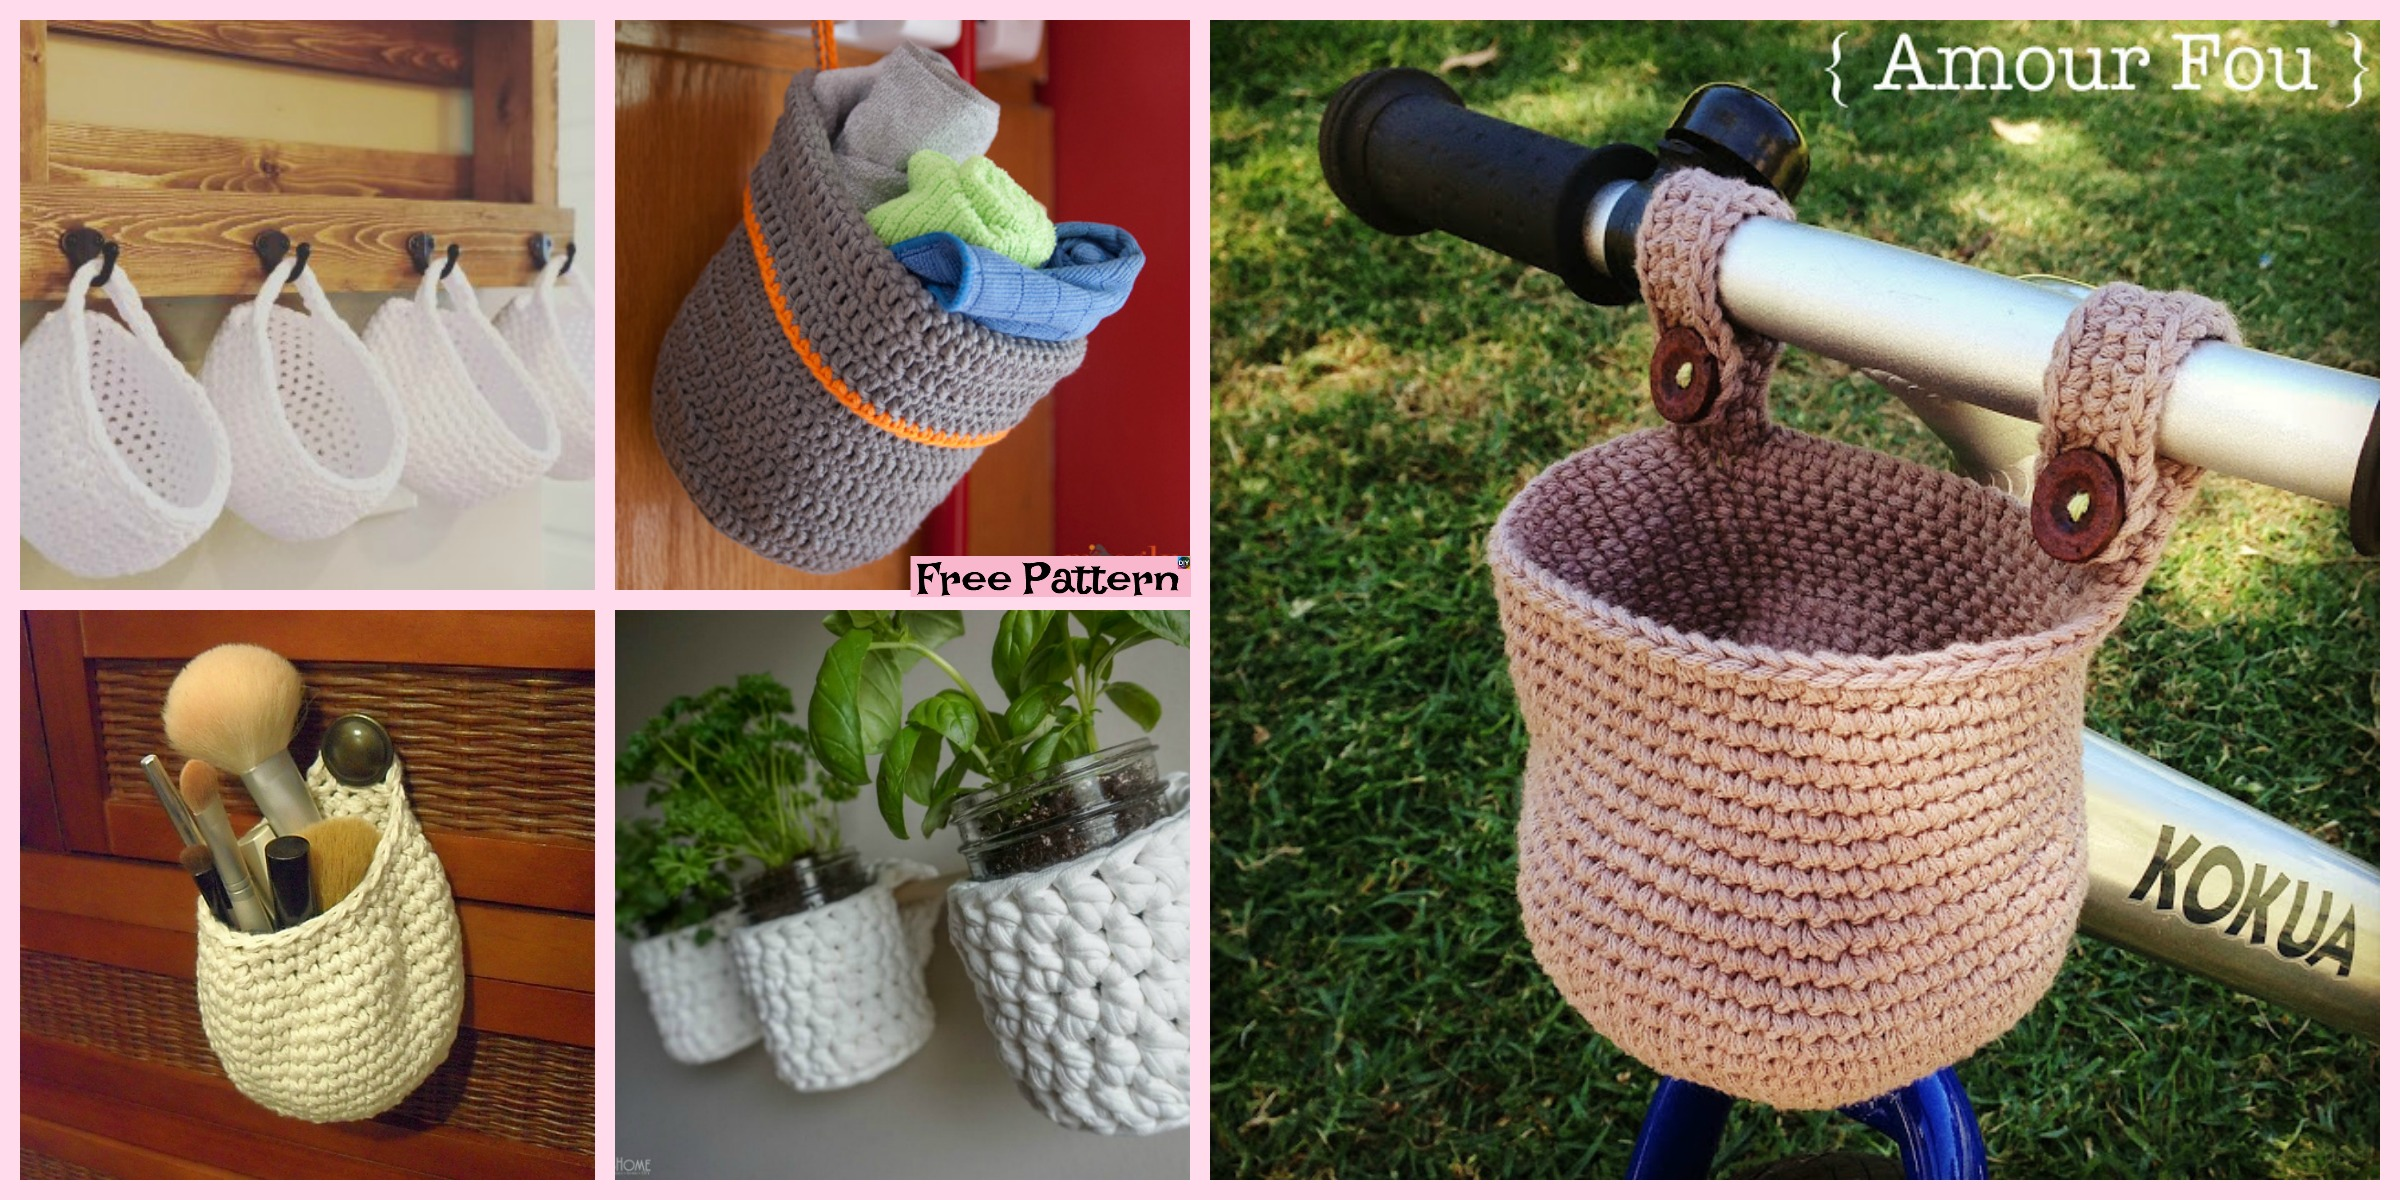 diy4ever- 15 useful Crochet Hanging Basket - Free Patterns